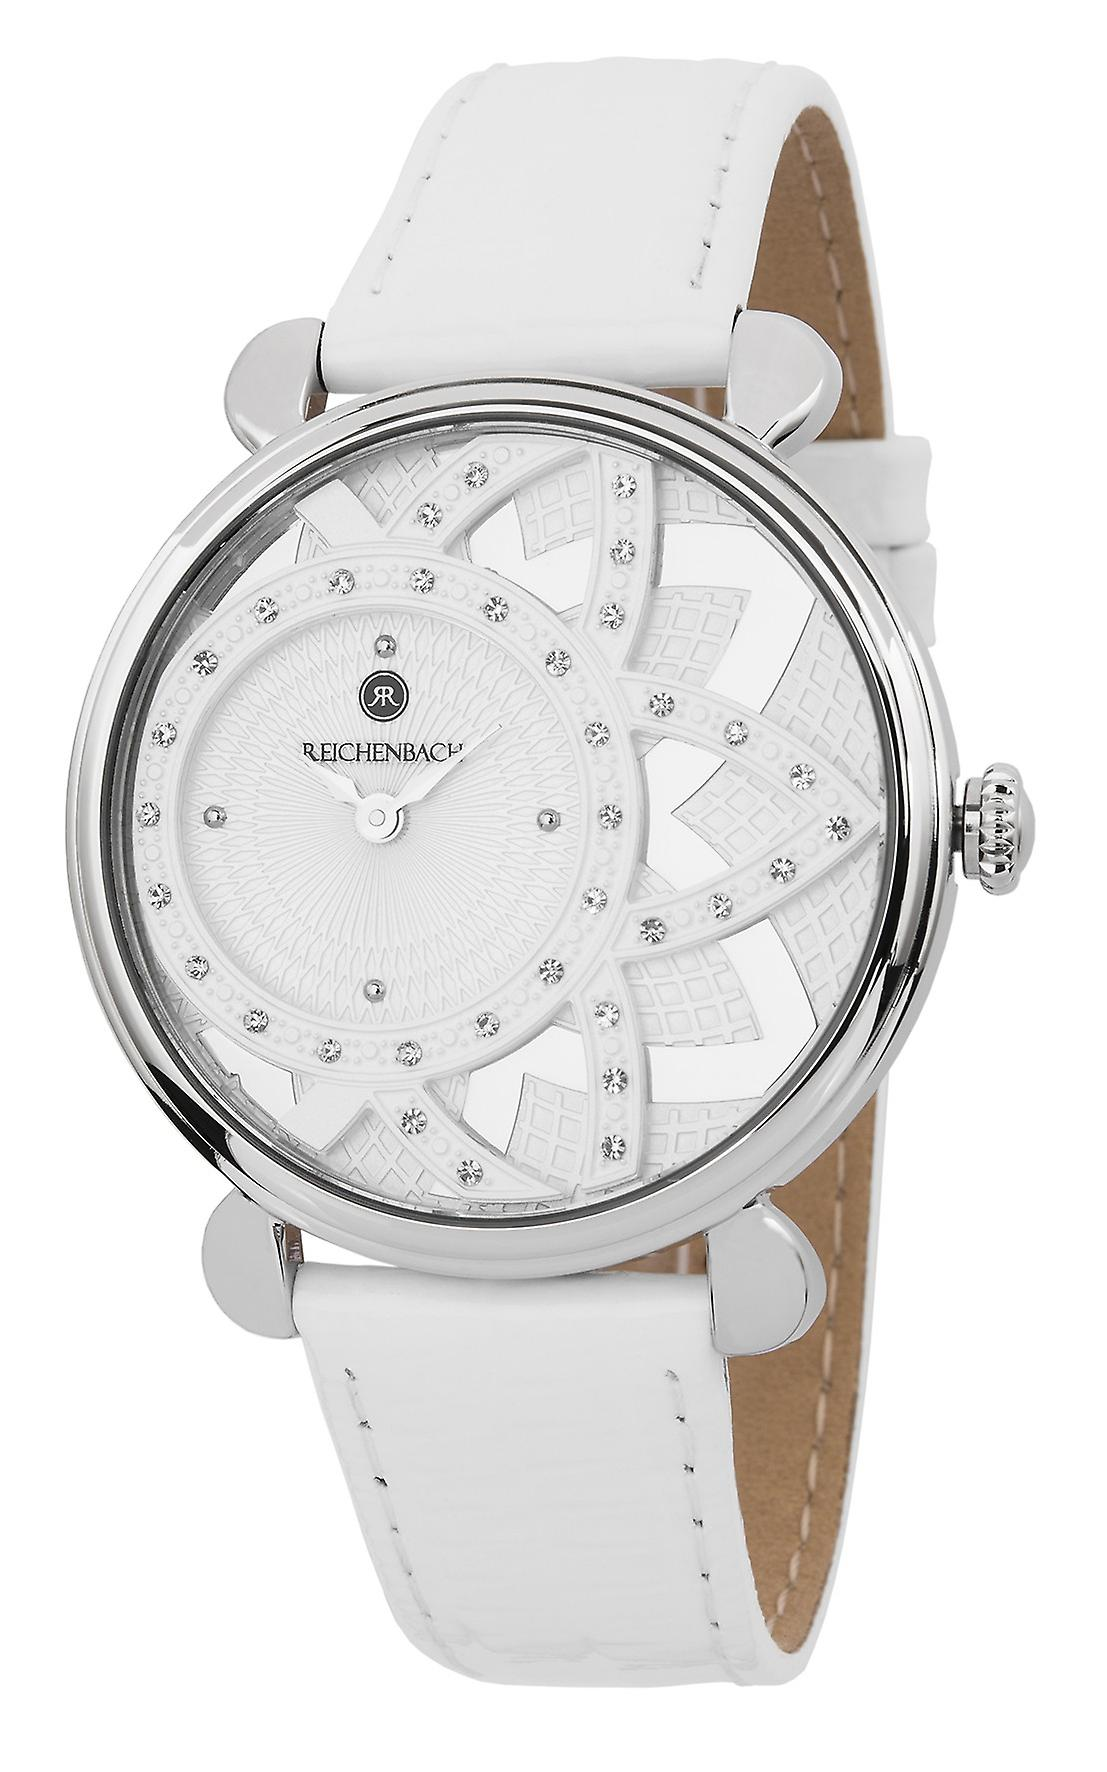 Reichenbach ladies quartz watch Baack, RB800-186